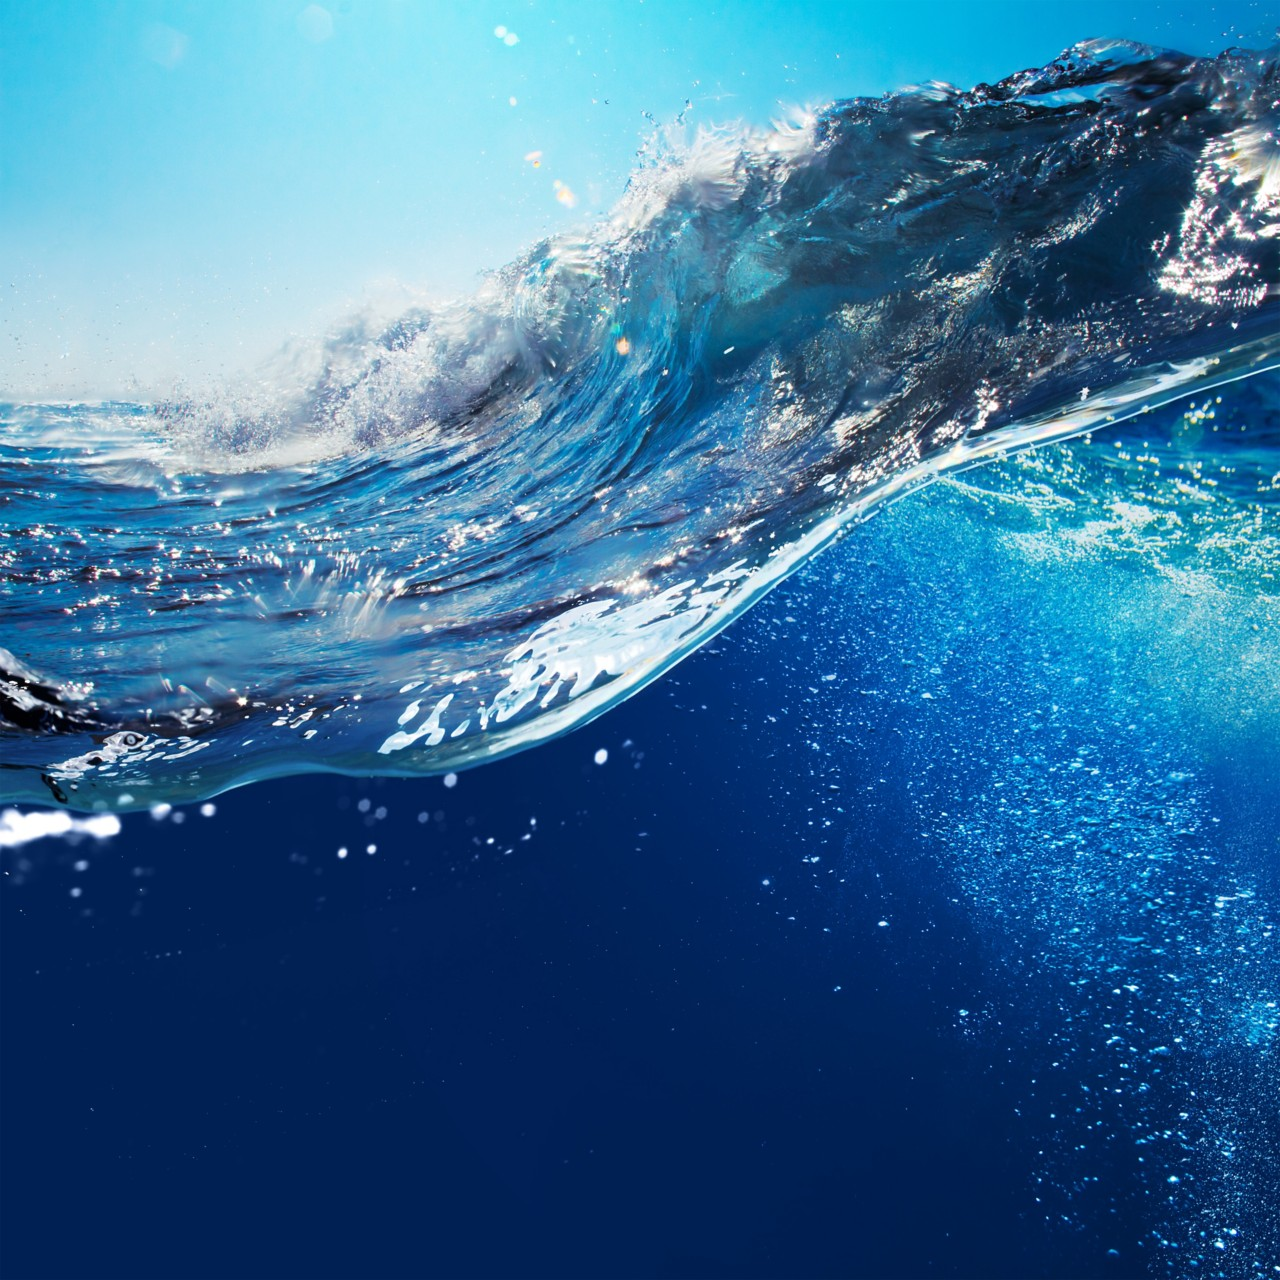 breaking-blue-wave-with-bubbles-on-sunny-day-and-blue-sky-square-3500x3500-image-file